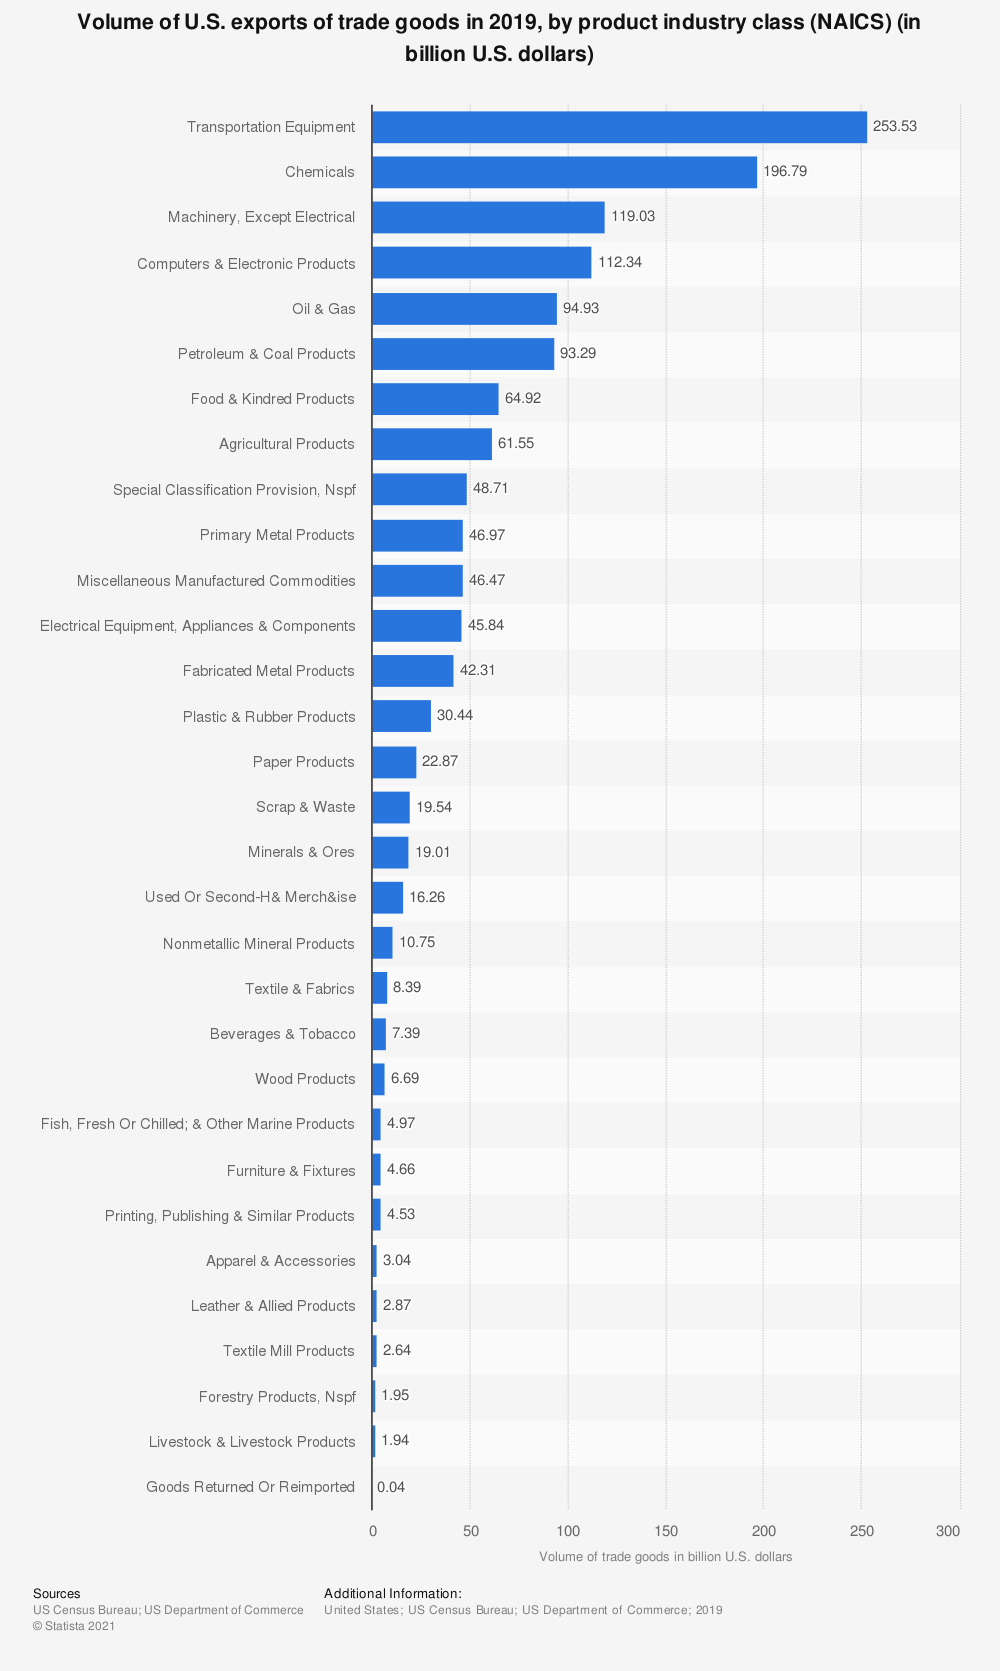 Statistic: Volume of U.S. exports of trade goods in 2019, by product industry class (NAICS) (in billion U.S. dollars) | Statista